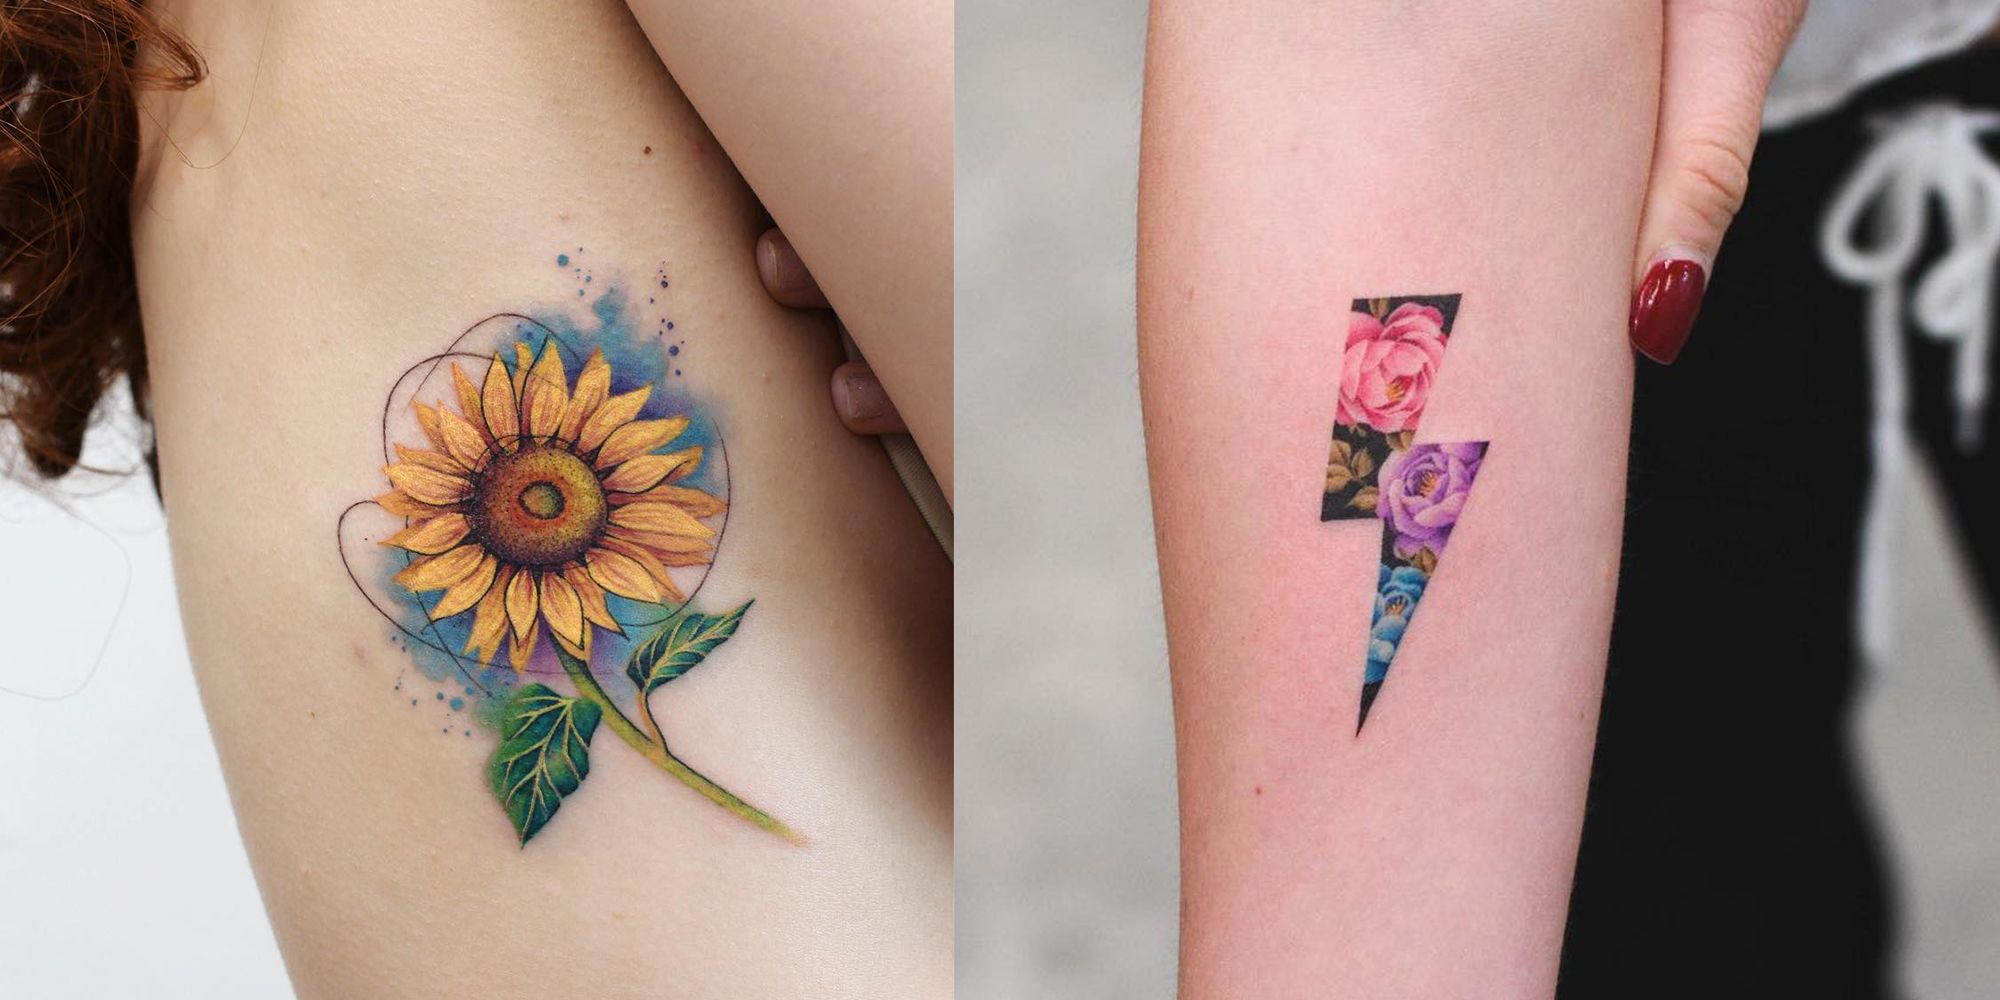 20 Best Watercolor Tattoo Ideas and Designs for 2020